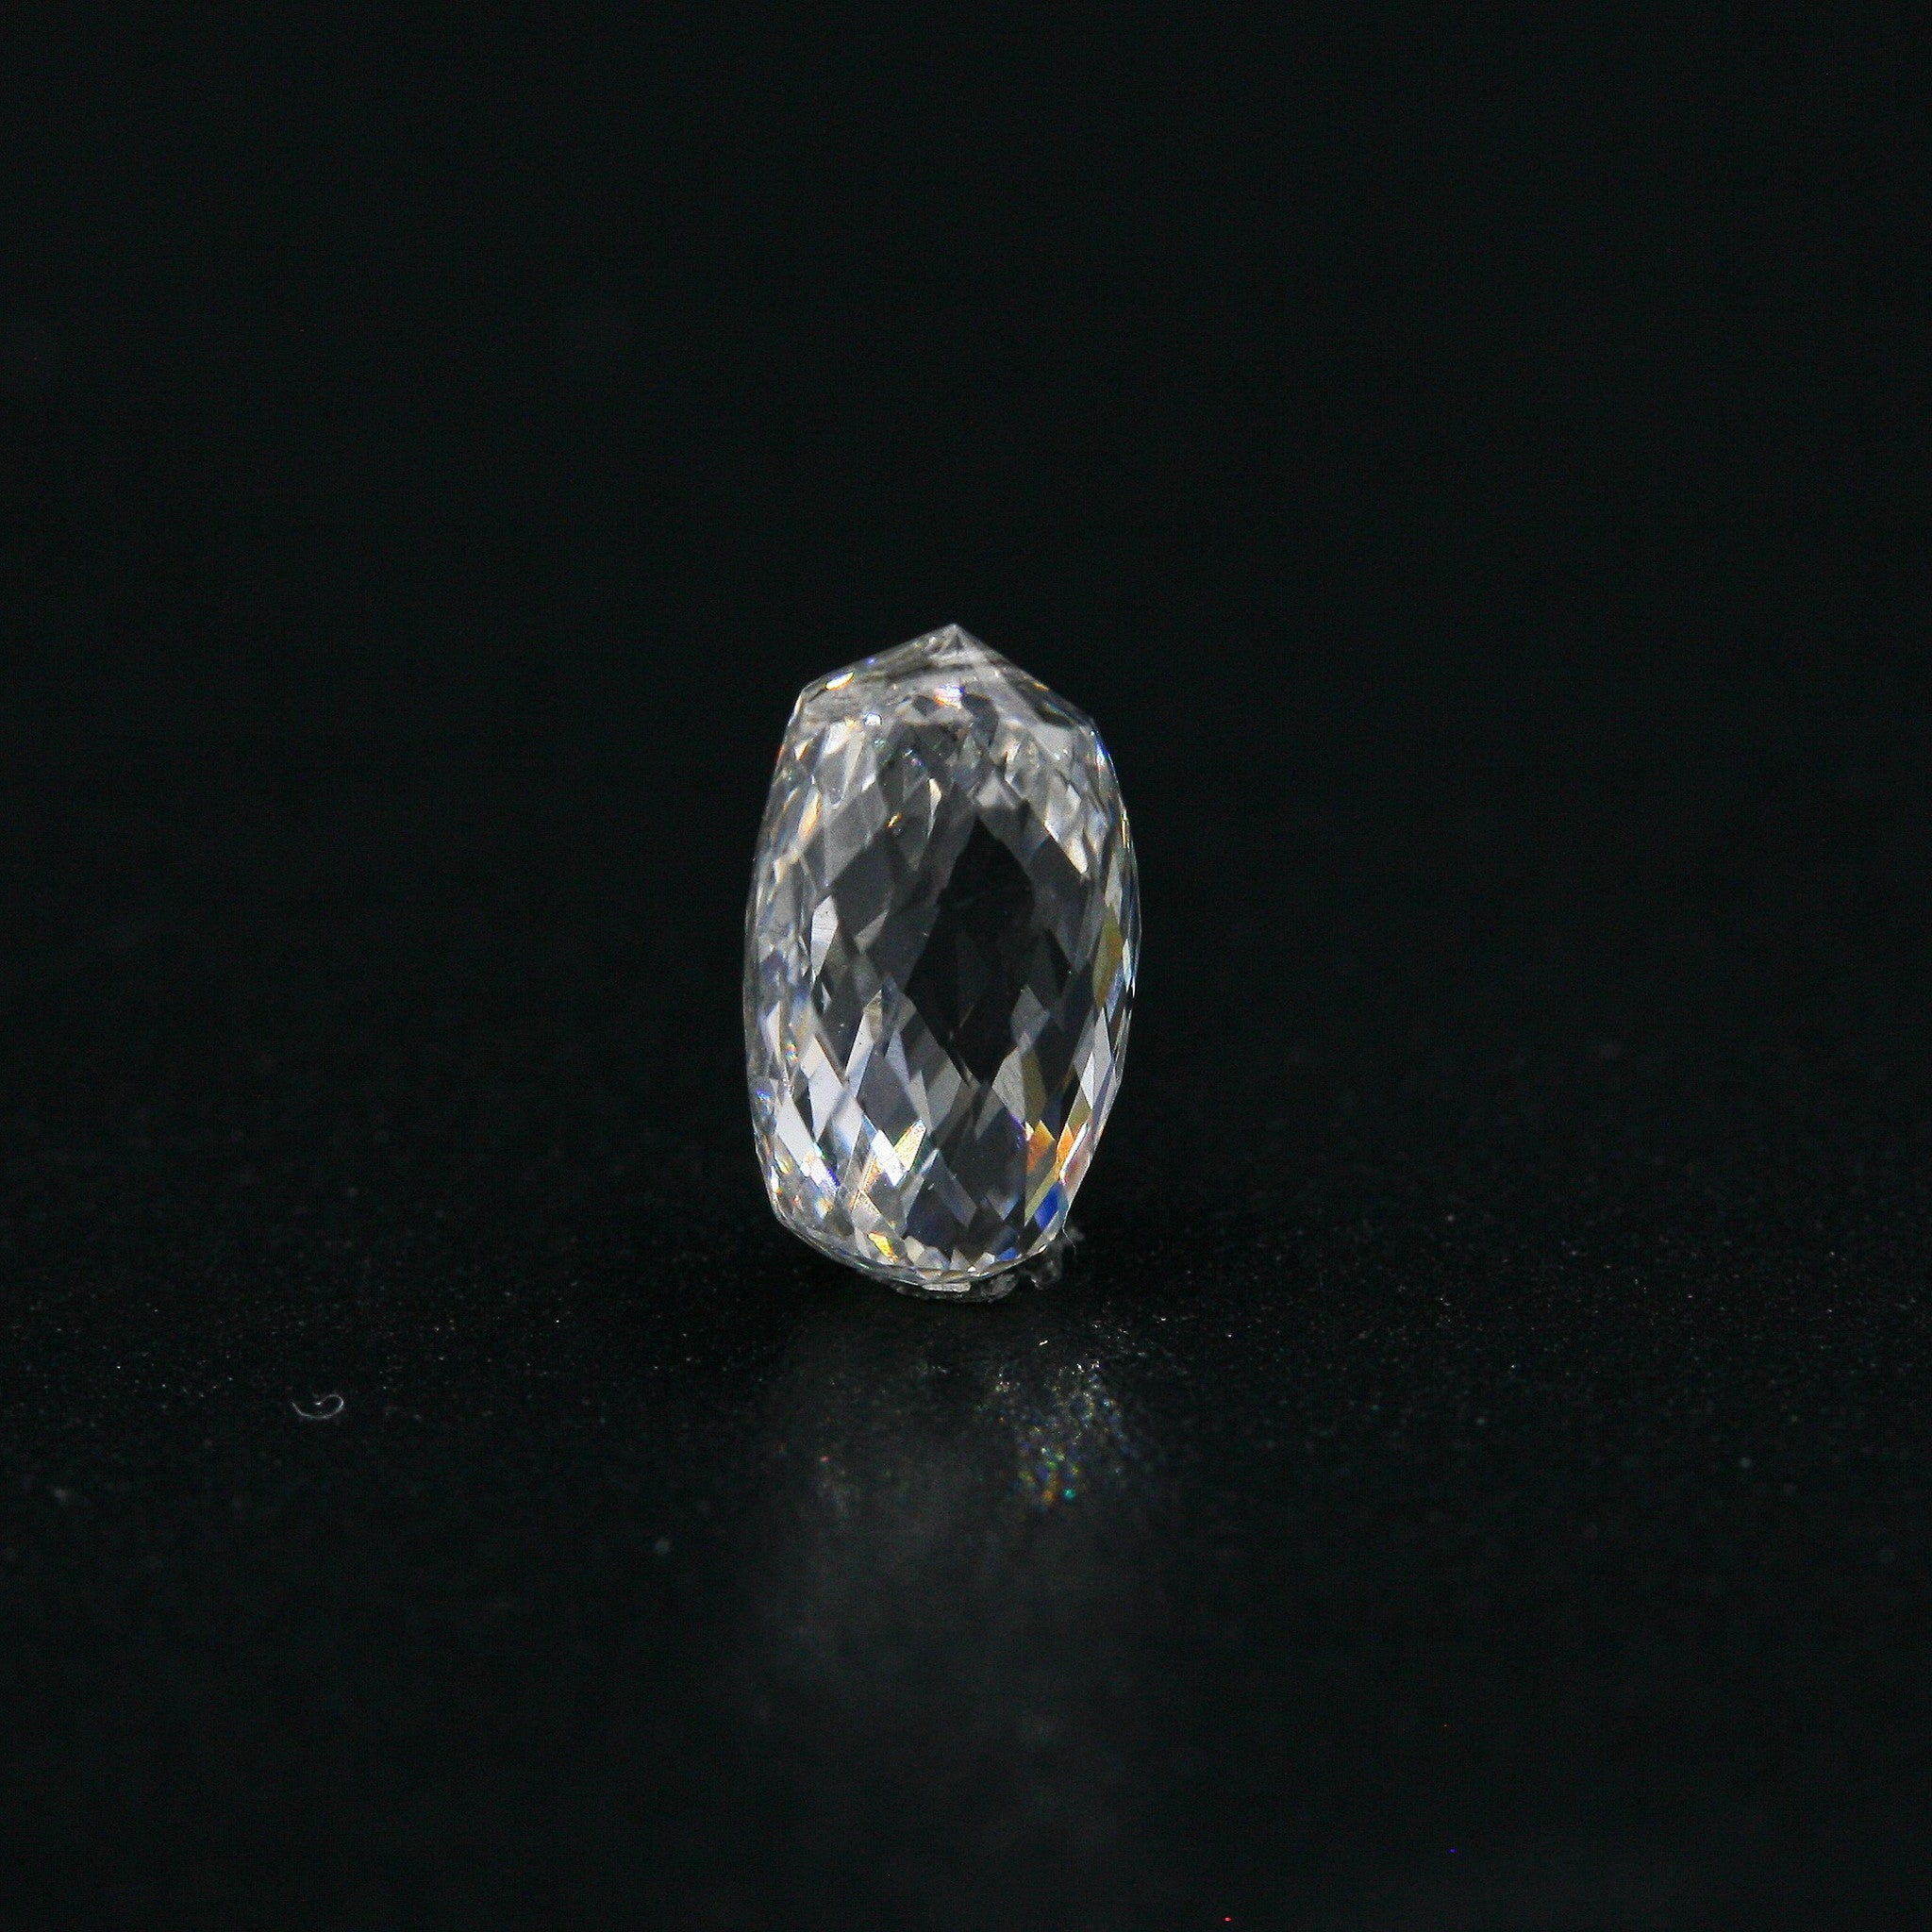 White Diamond Briolette Cut 7x4 - Gemorex International Inc